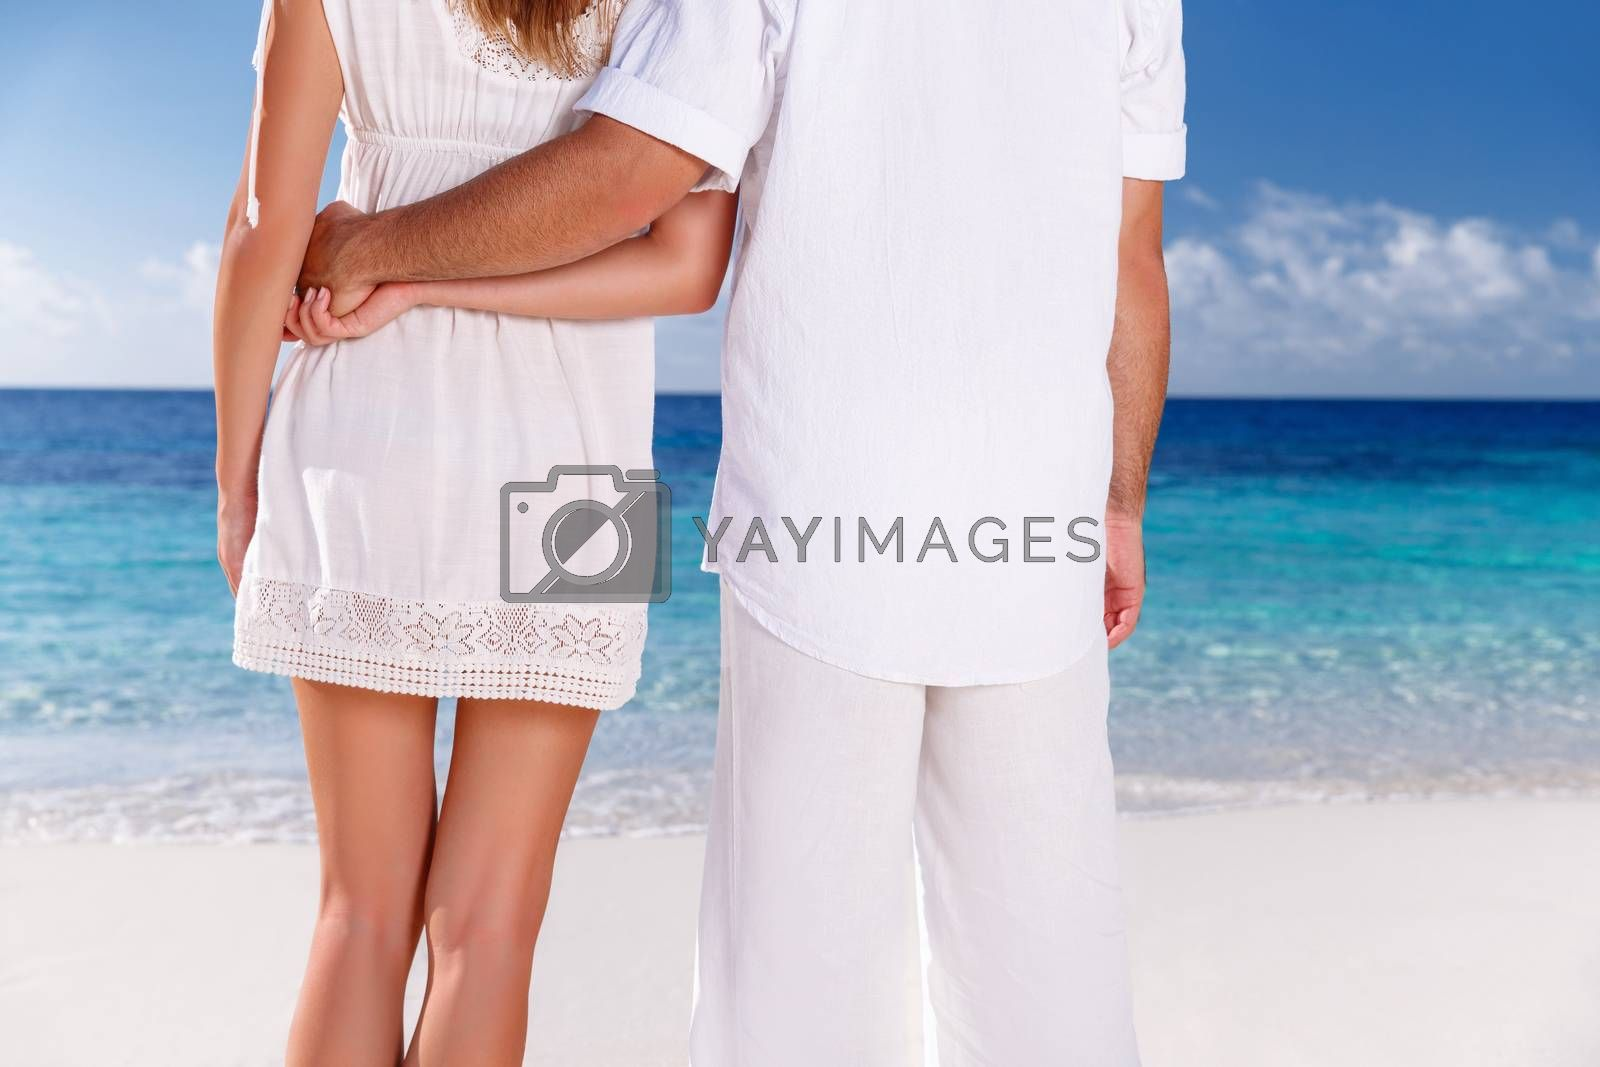 Royalty free image of Romantic relationship by Anna_Omelchenko